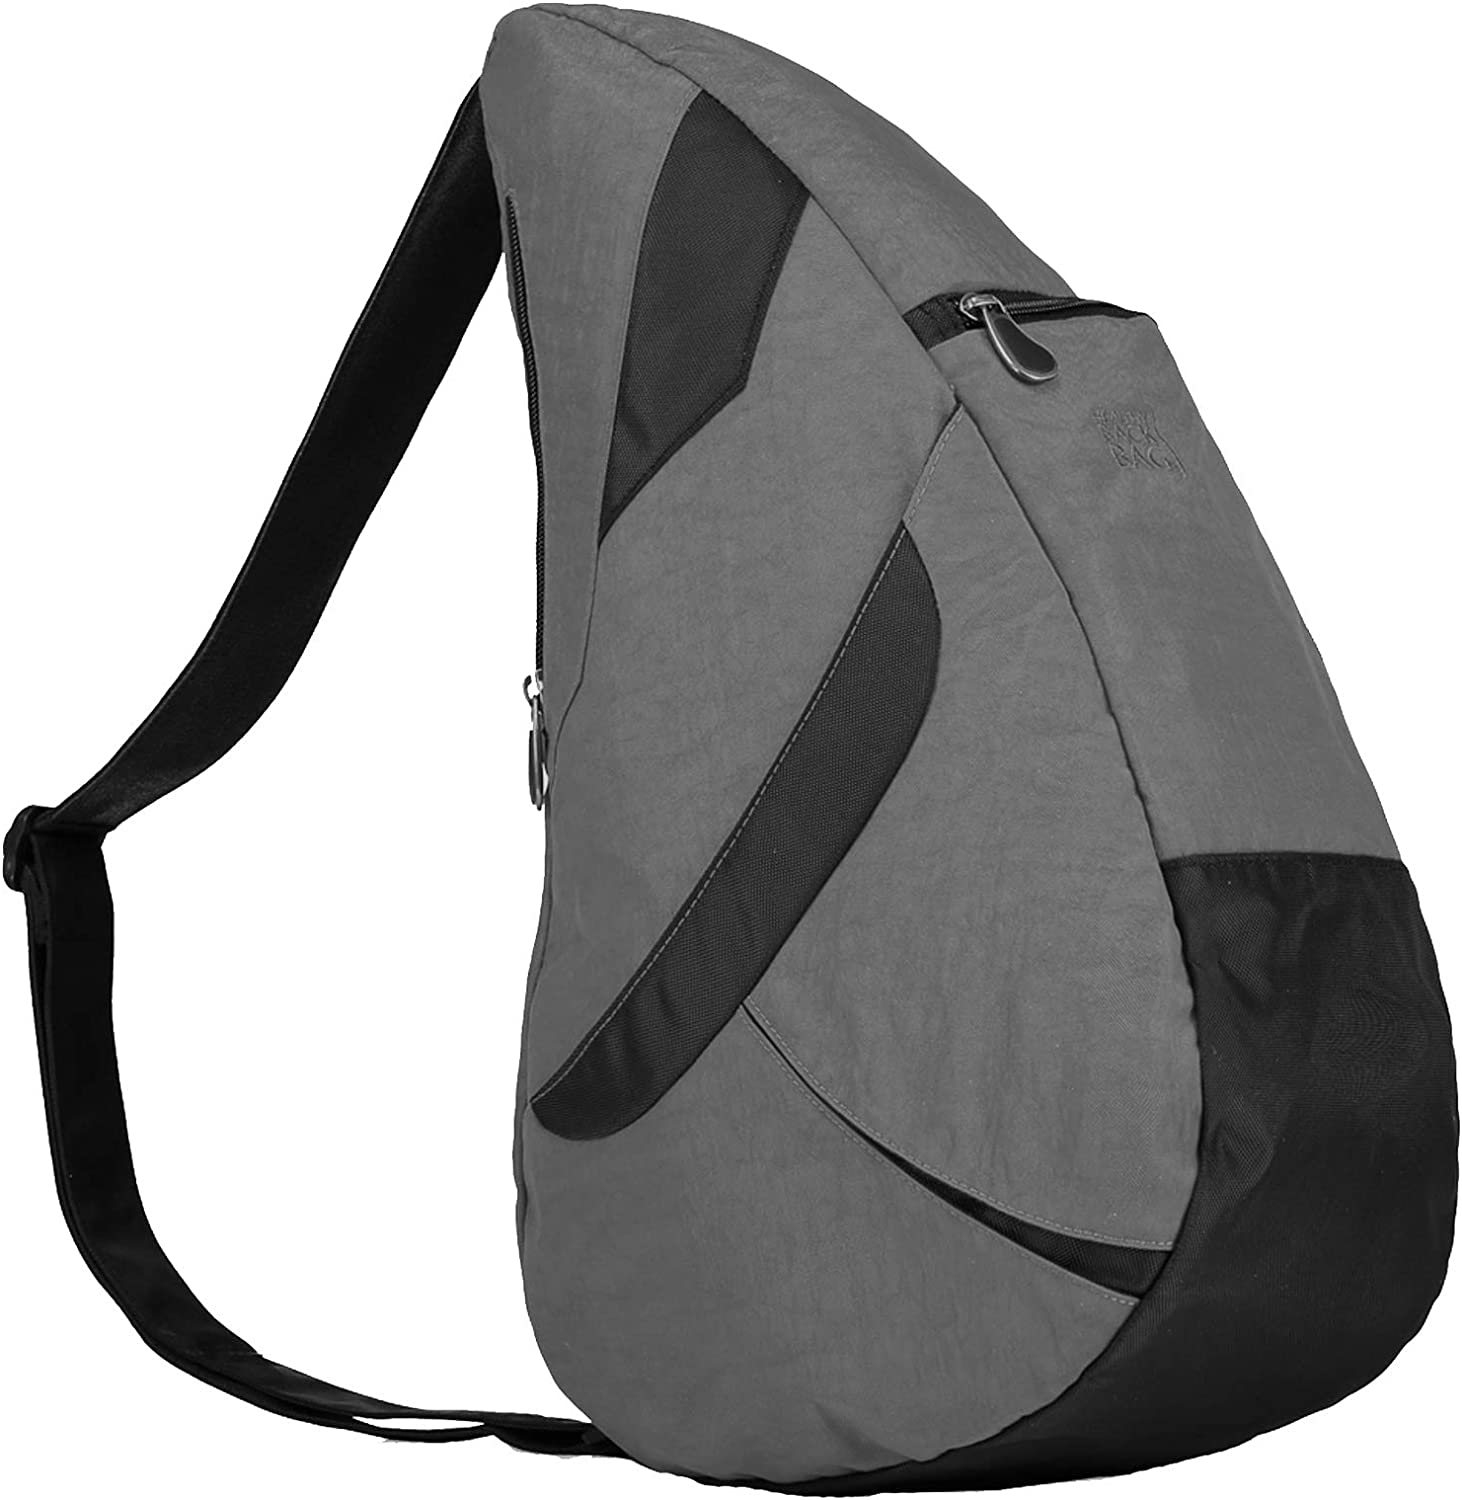 AmeriBag Healthy Back Bag tote Traveler Medium Stormy Grey